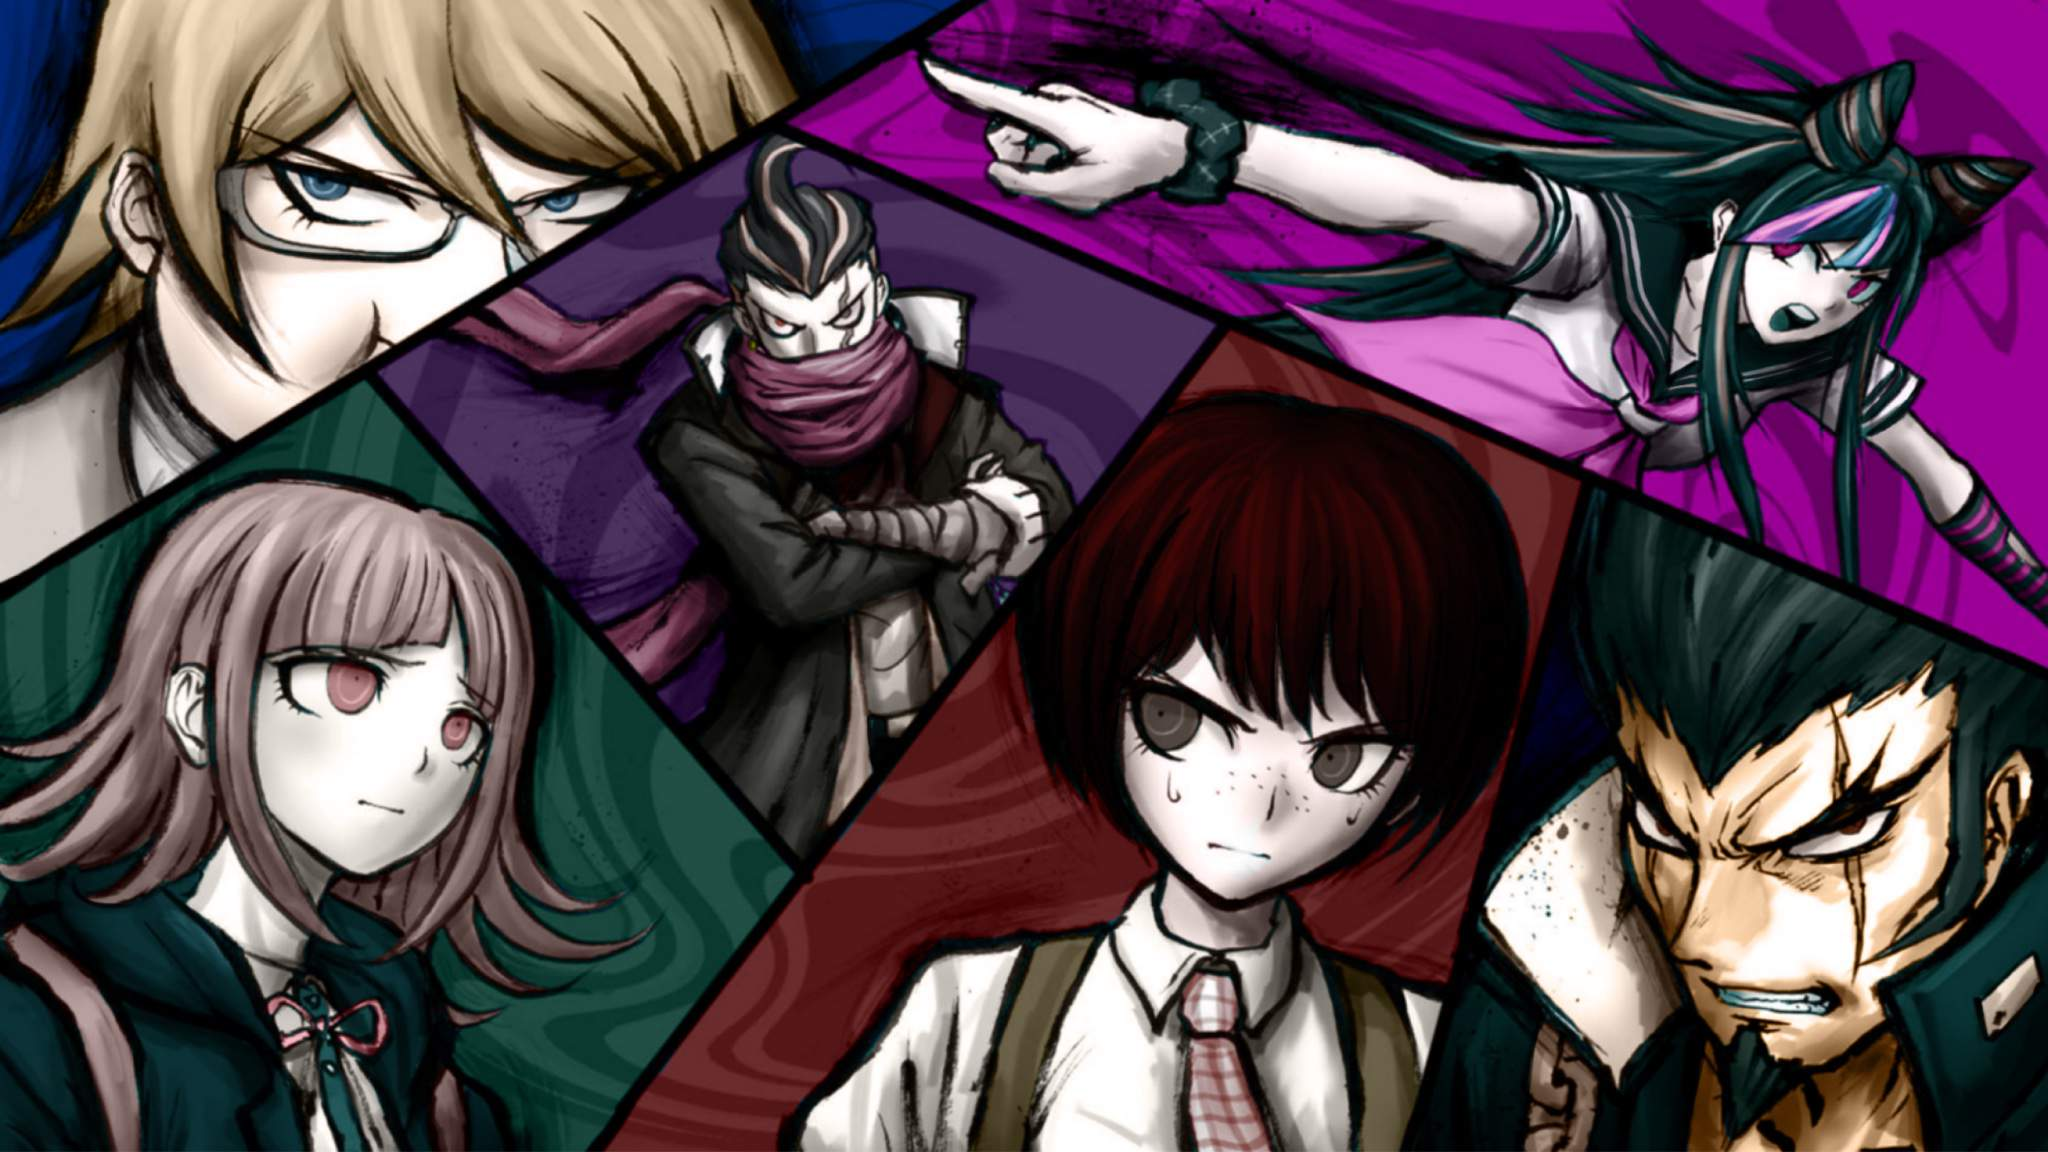 Coloured In This Class Trial Cg Danganronpa Amino Zerochan has 201 hoshi ryouma anime images, wallpapers, fanart, cosplay pictures, and many more in its gallery. coloured in this class trial cg danganronpa amino